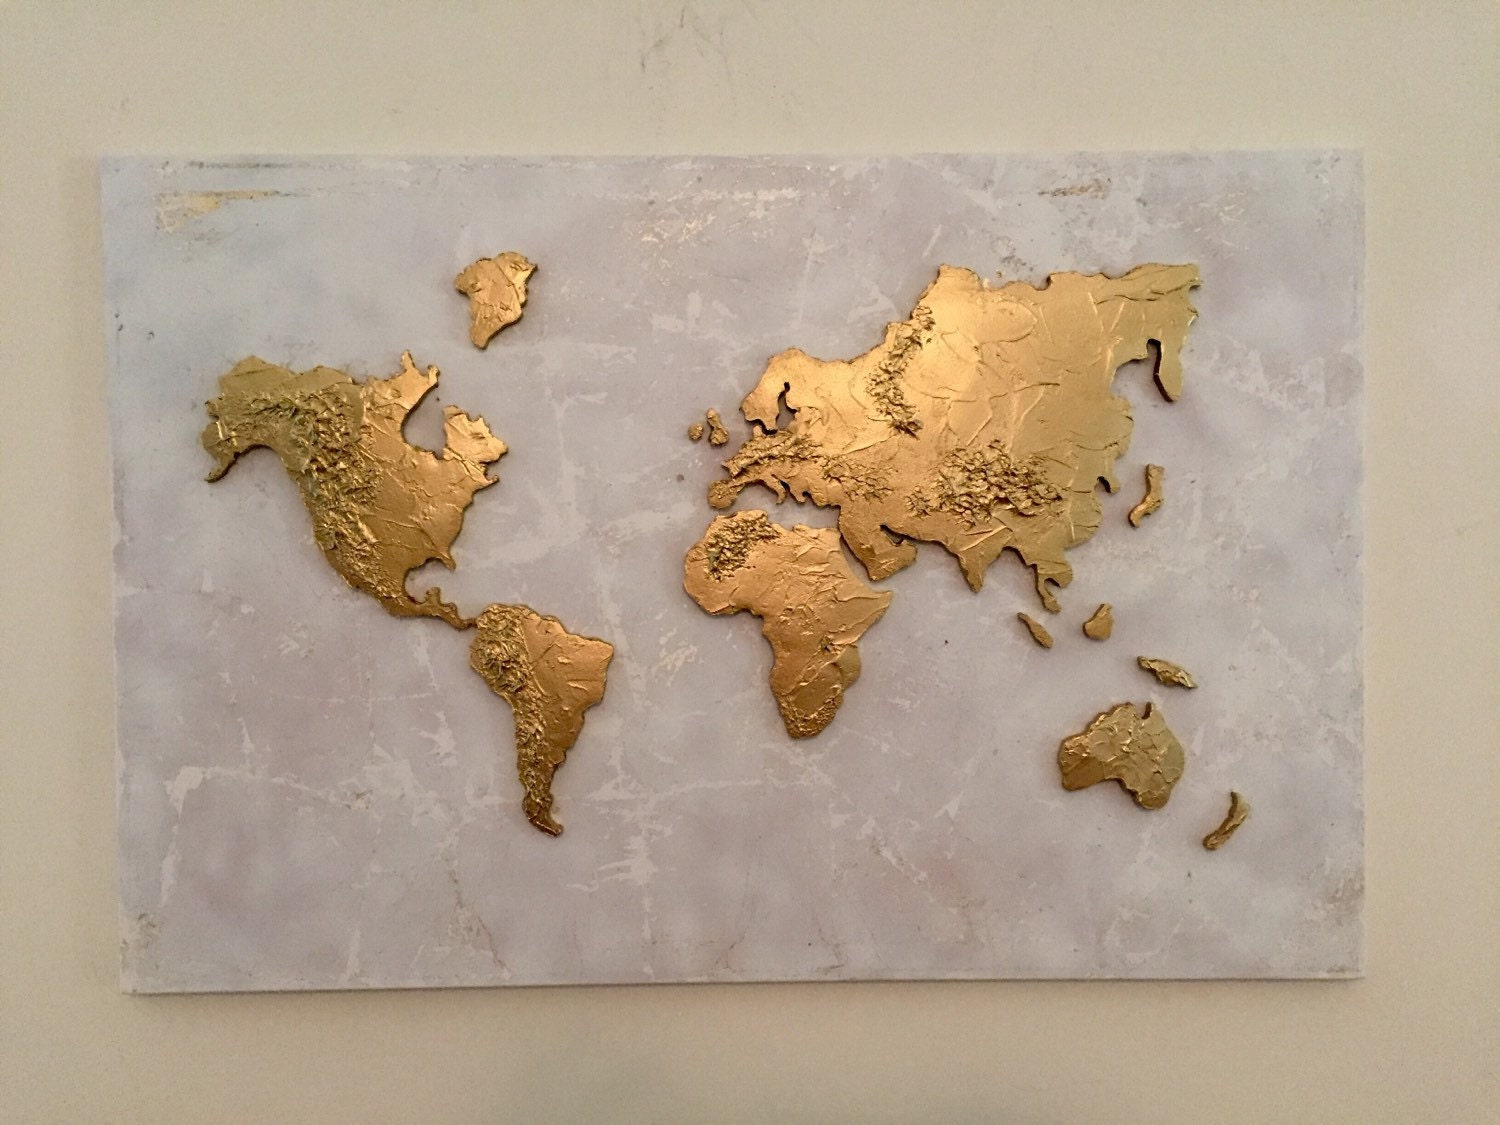 Gold leaf map original gold leaf map of the world gold leaf large original world map painting world map map art globe painting world map canvas painting 3d gumiabroncs Gallery